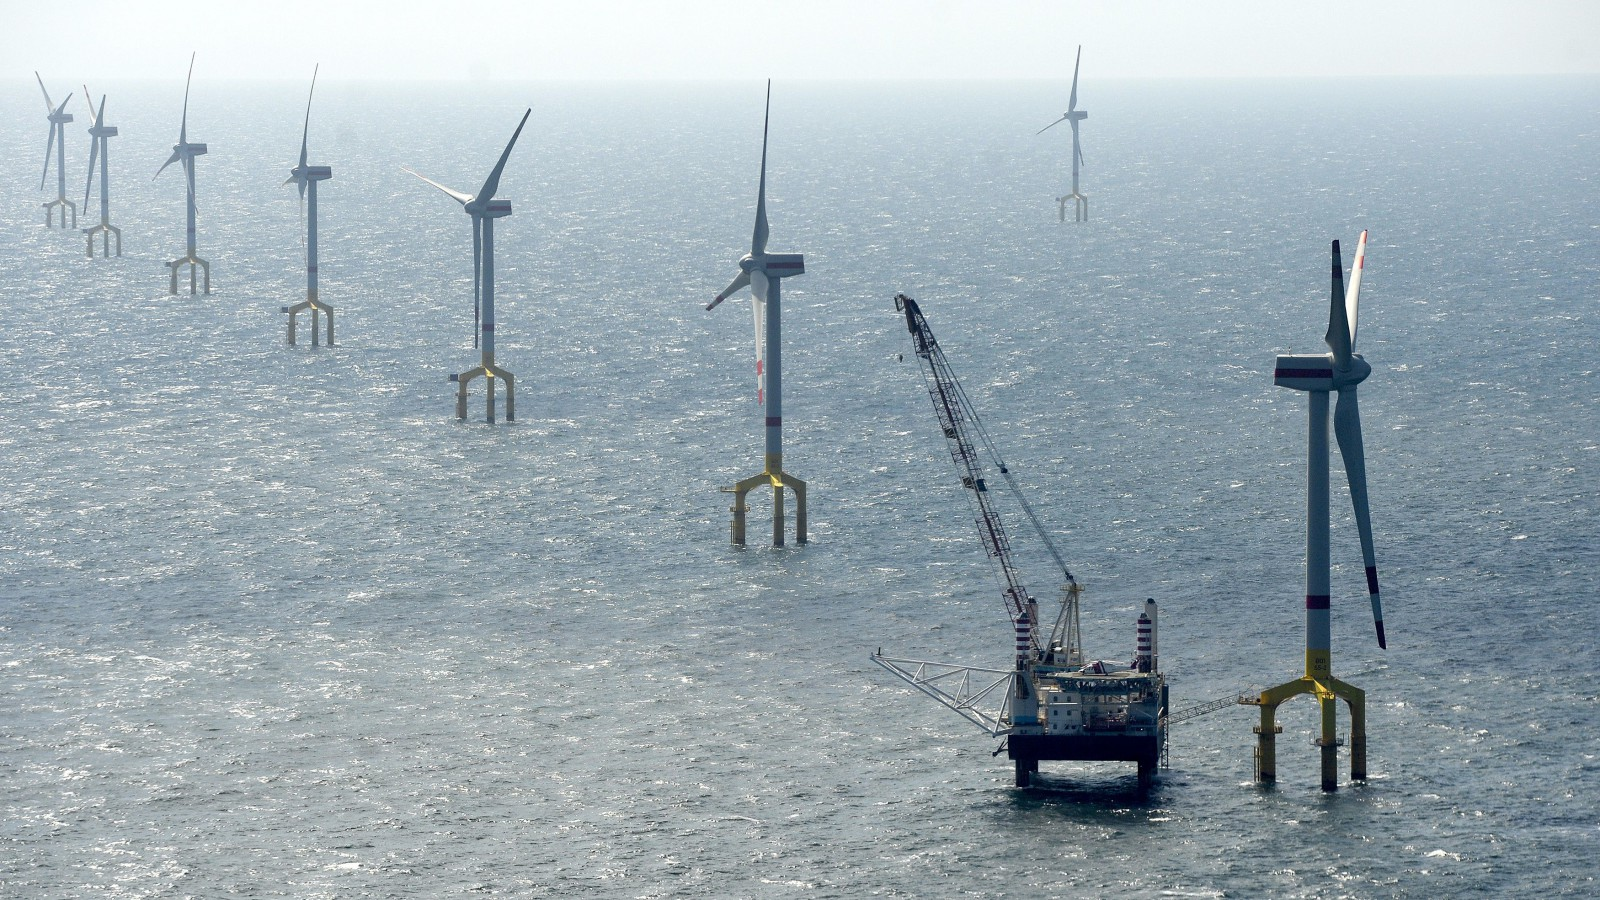 Windmills of the wind farm BARD Offshore 1, are pictured 100 kilometres north-west of the German island of Borkum, August 26, 2013. The first complete high-sea wind farm off the North Sea coast was opened by German Economy Minister Philipp Roesler on Monday.  REUTERS/Fabian Bimmer (GERMANY - Tags: BUSINESS ENERGY TPX IMAGES OF THE DAY) - RTX12X2B